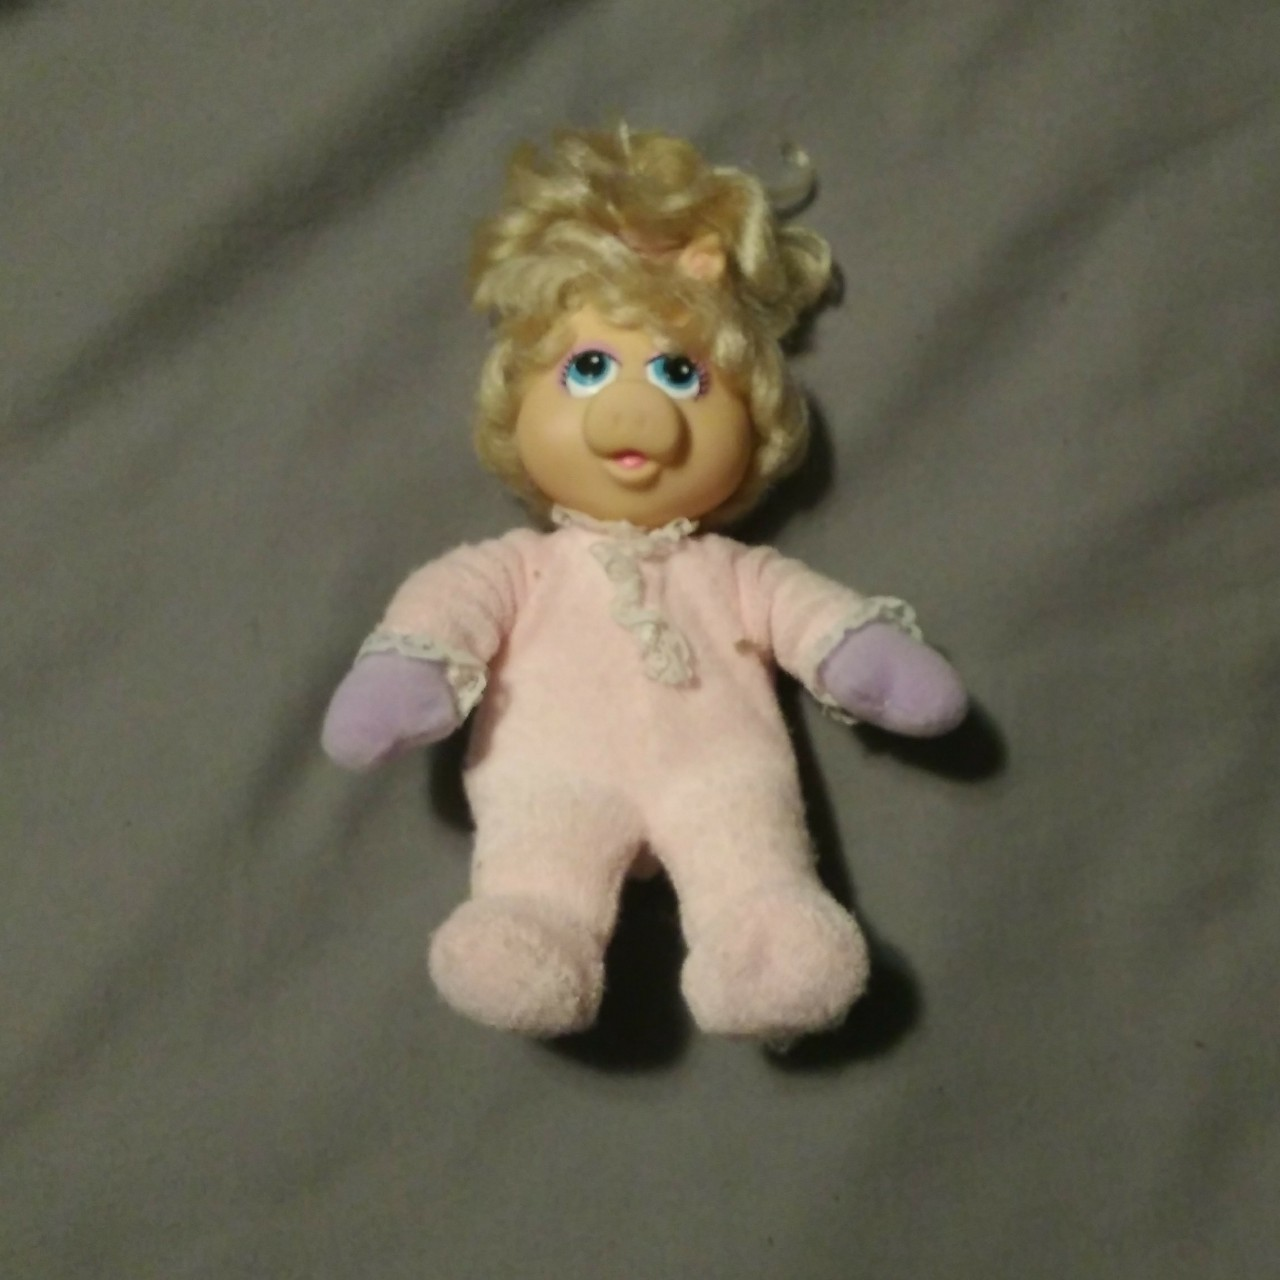 Product Image 1 - @ 1980s Baby miss piggy